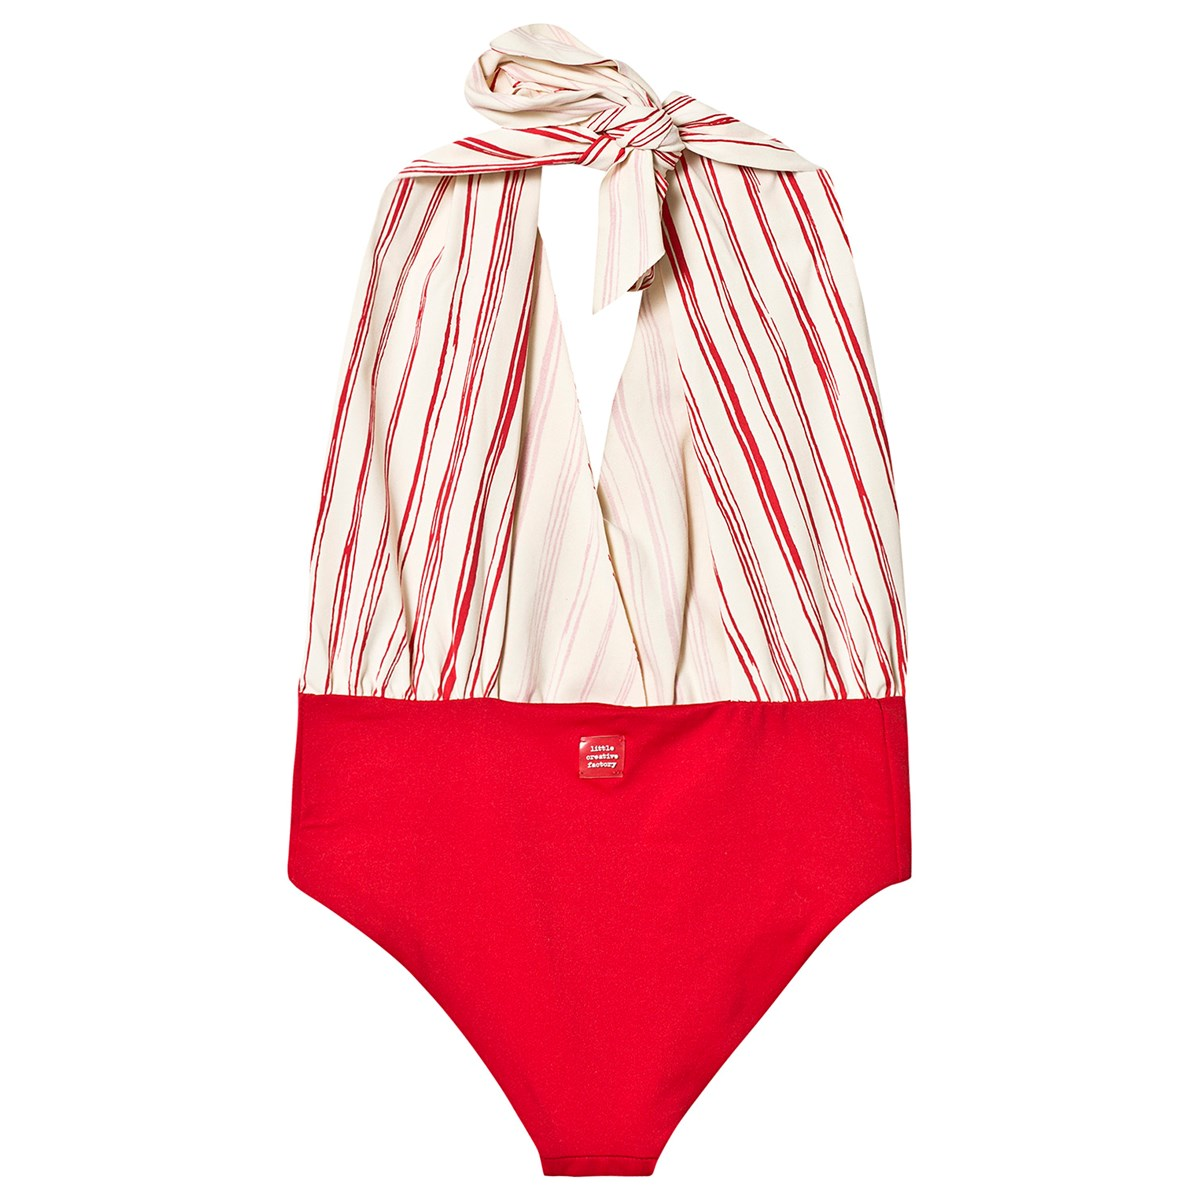 98a36a37d7 Little Creative Factory - Red and White Stripe Bamboo Wrap Swimsuit ...